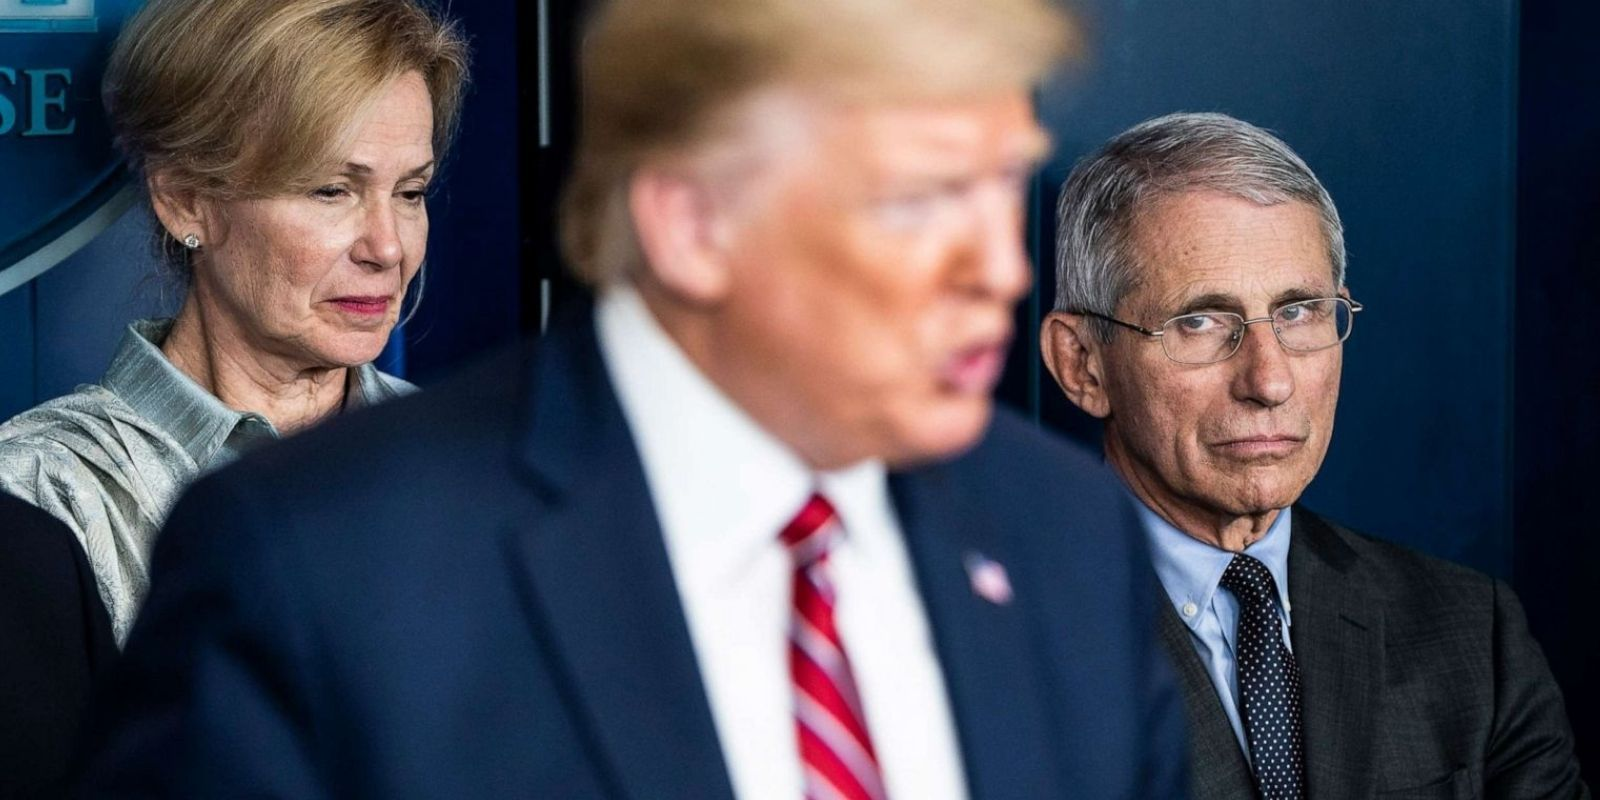 Fauci allegedly misled Trump admin on gain-of-function research